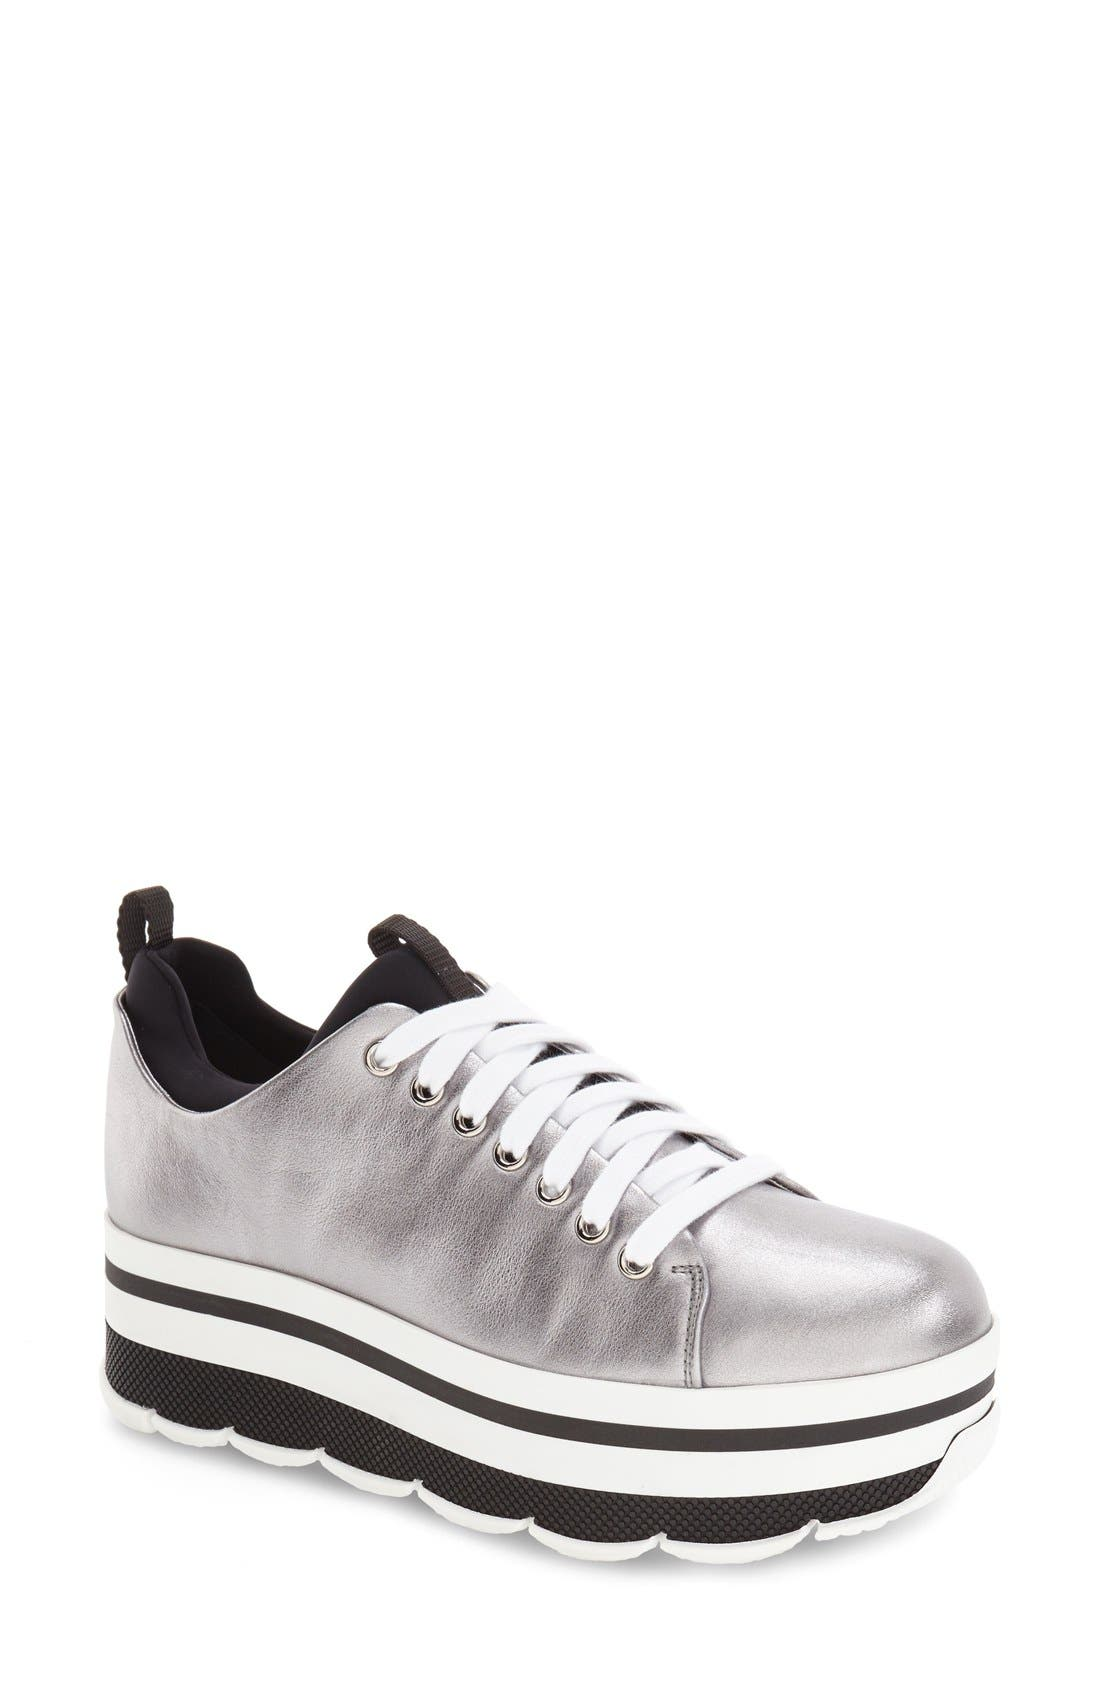 Platform Sneaker,                         Main,                         color, Silver Leather